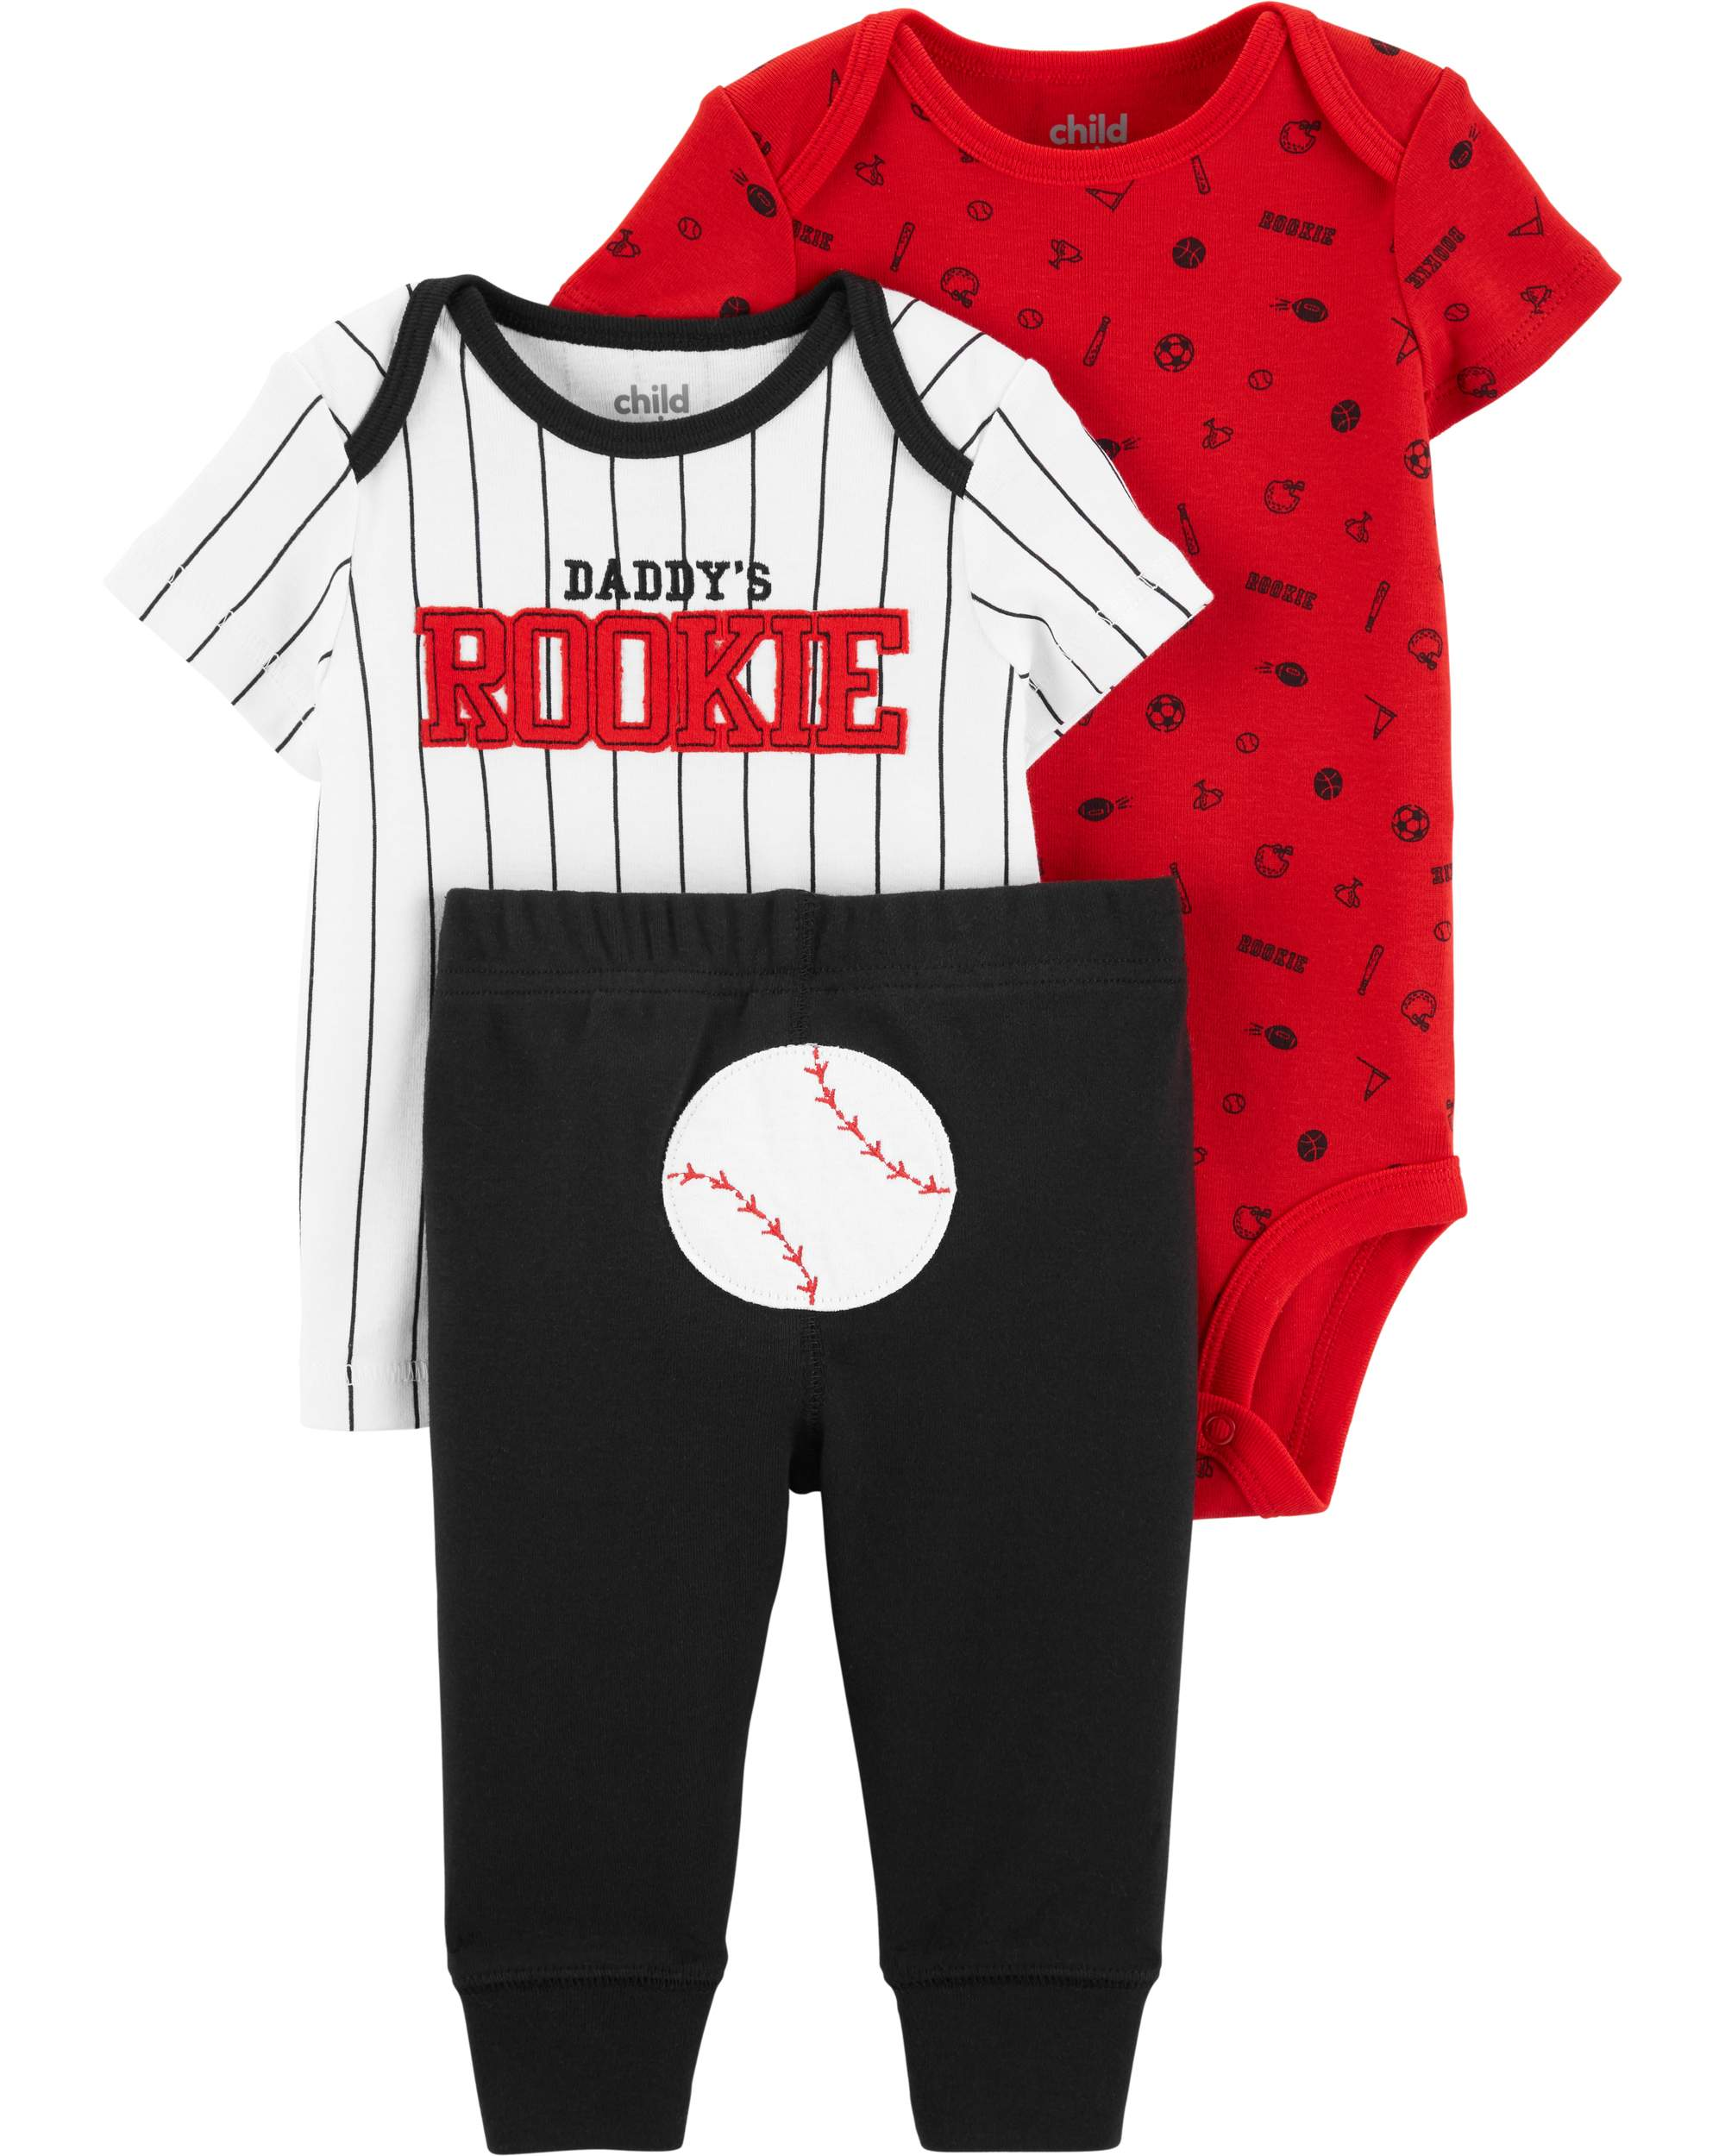 Short Sleeve T-Shirt, Bodysuit, and Pants Outfit Set, 3 pc set (Baby Boys)